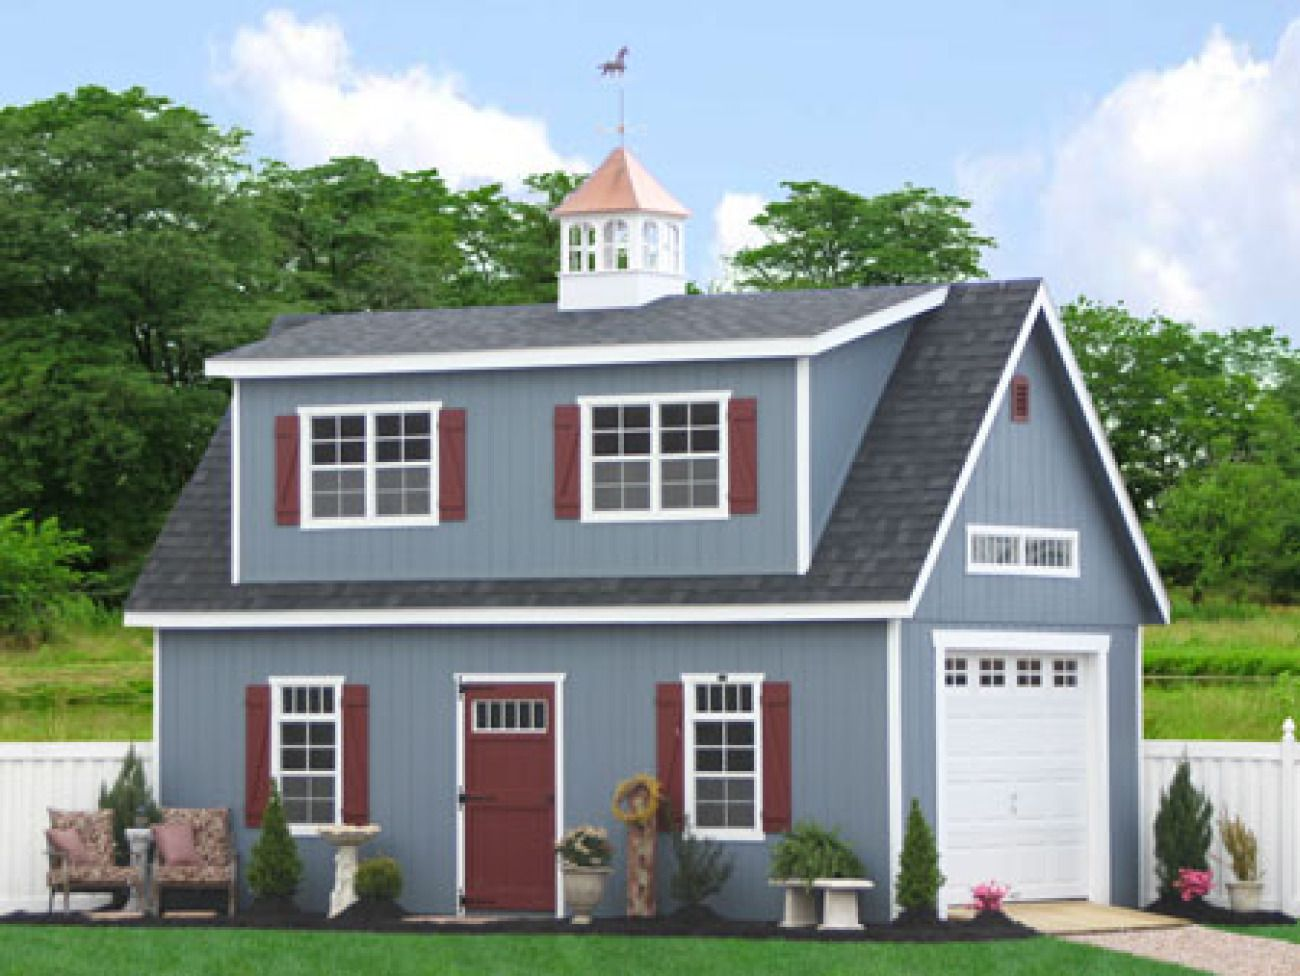 builders sheds storage the exterior amish pinterest pin structures garage